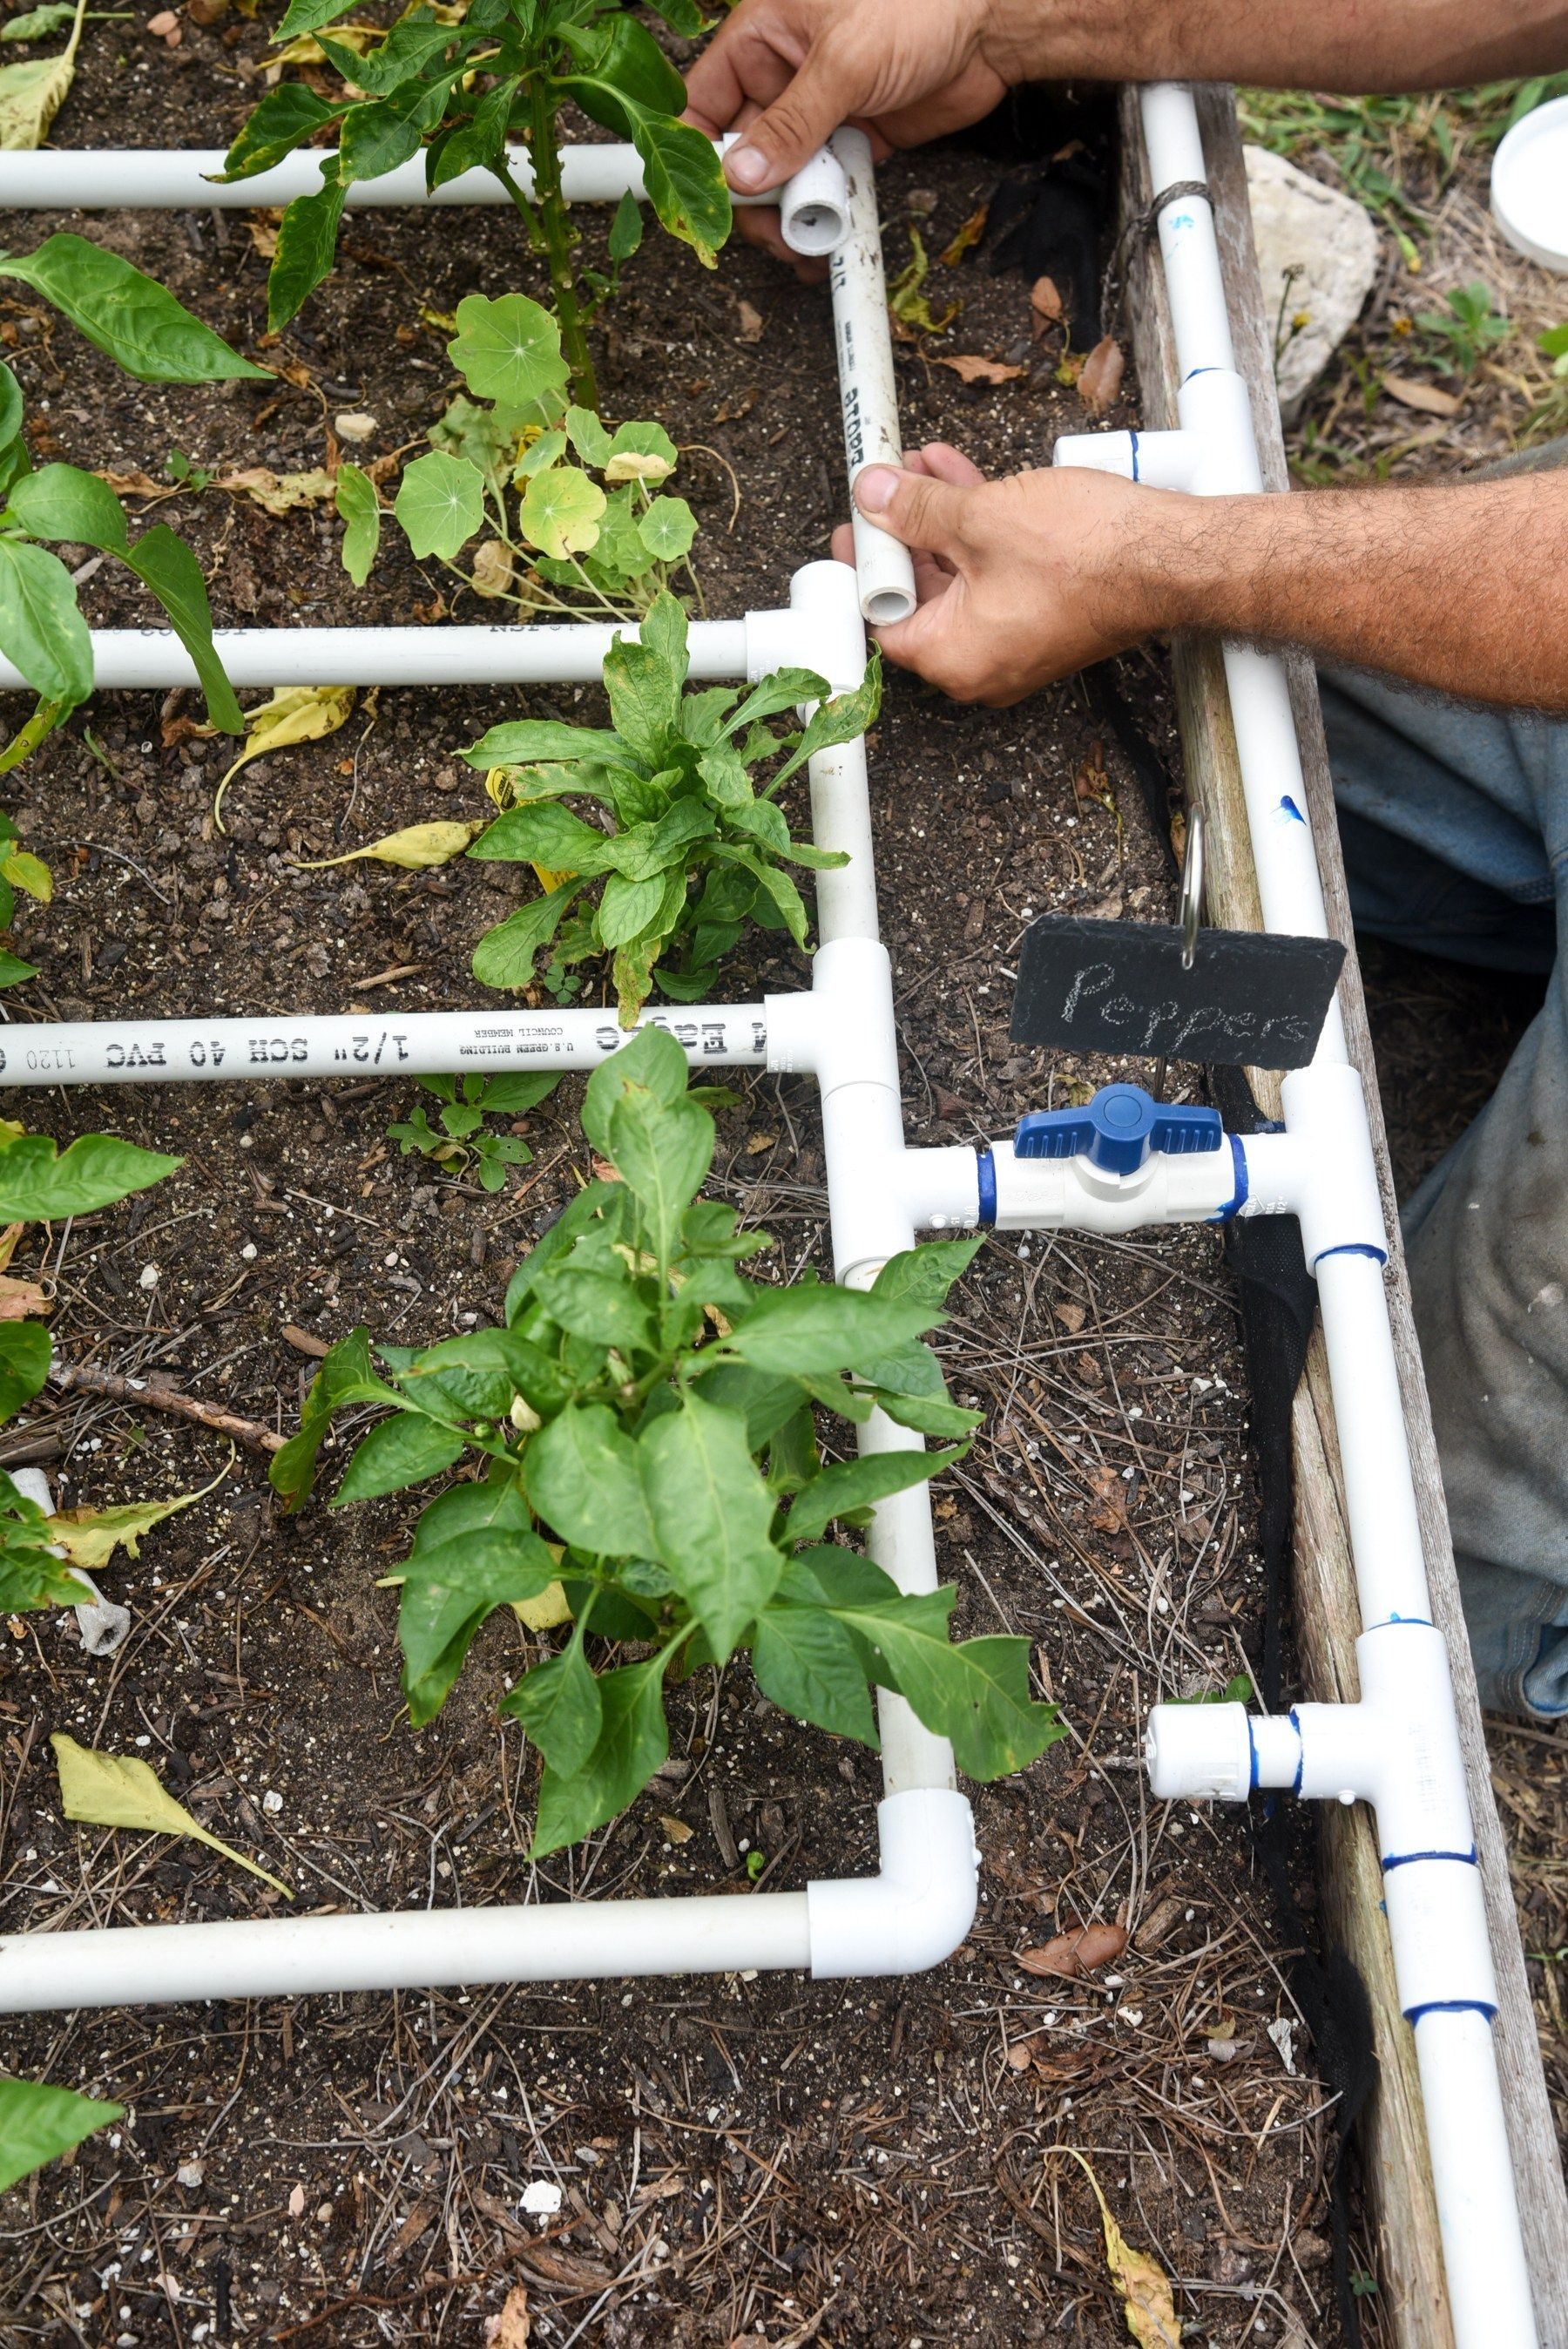 Raised Bed Drip Irrigation Watering System Drip Irrigation Watering System In 2020 Garden Irrigation System Garden Watering System Drip Irrigation